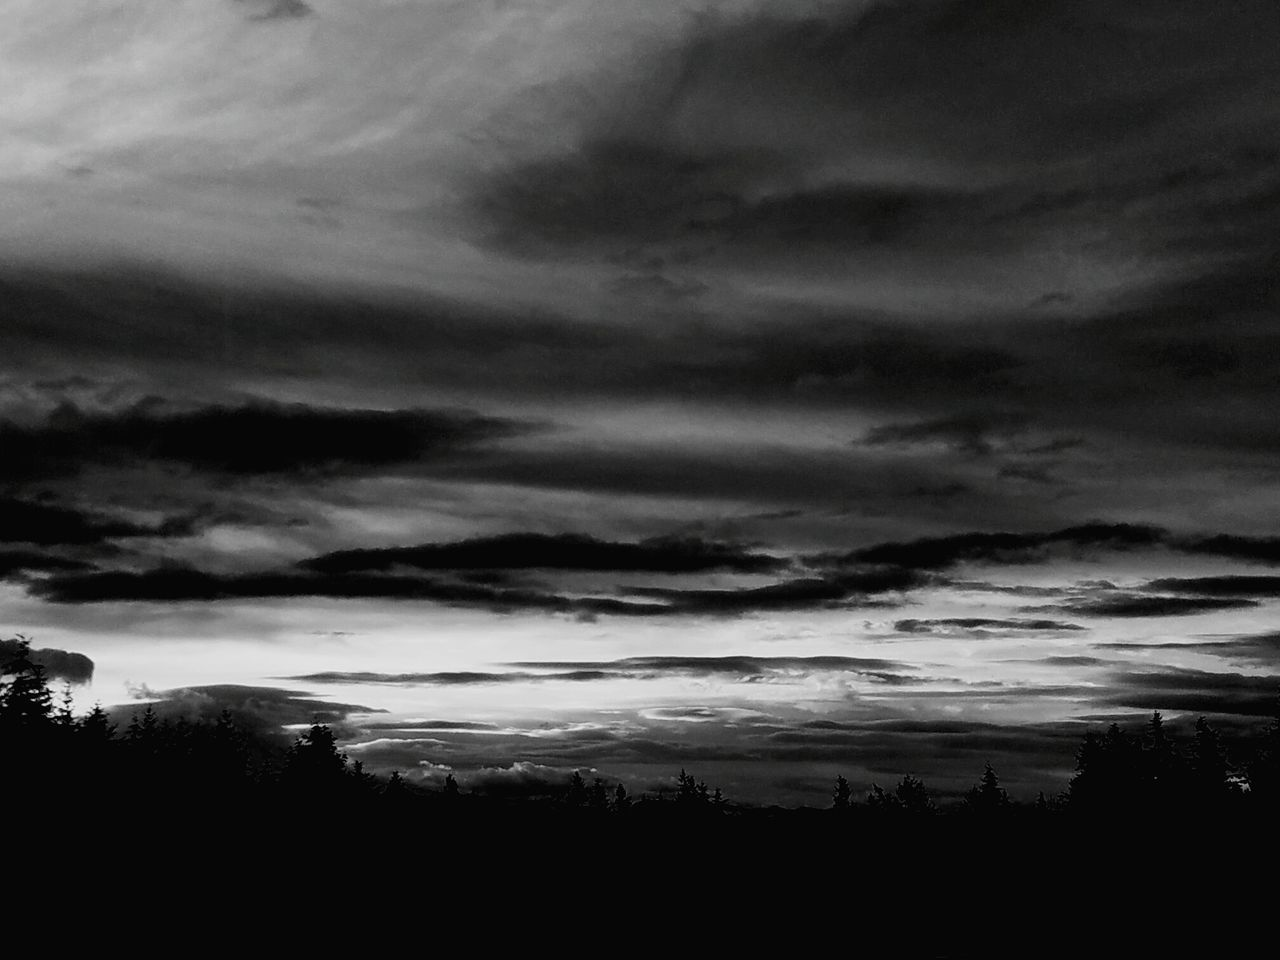 sky, nature, cloud - sky, silhouette, atmospheric mood, tranquility, tranquil scene, scenics, weather, beauty in nature, dusk, tree, no people, storm cloud, sunset, outdoors, landscape, day